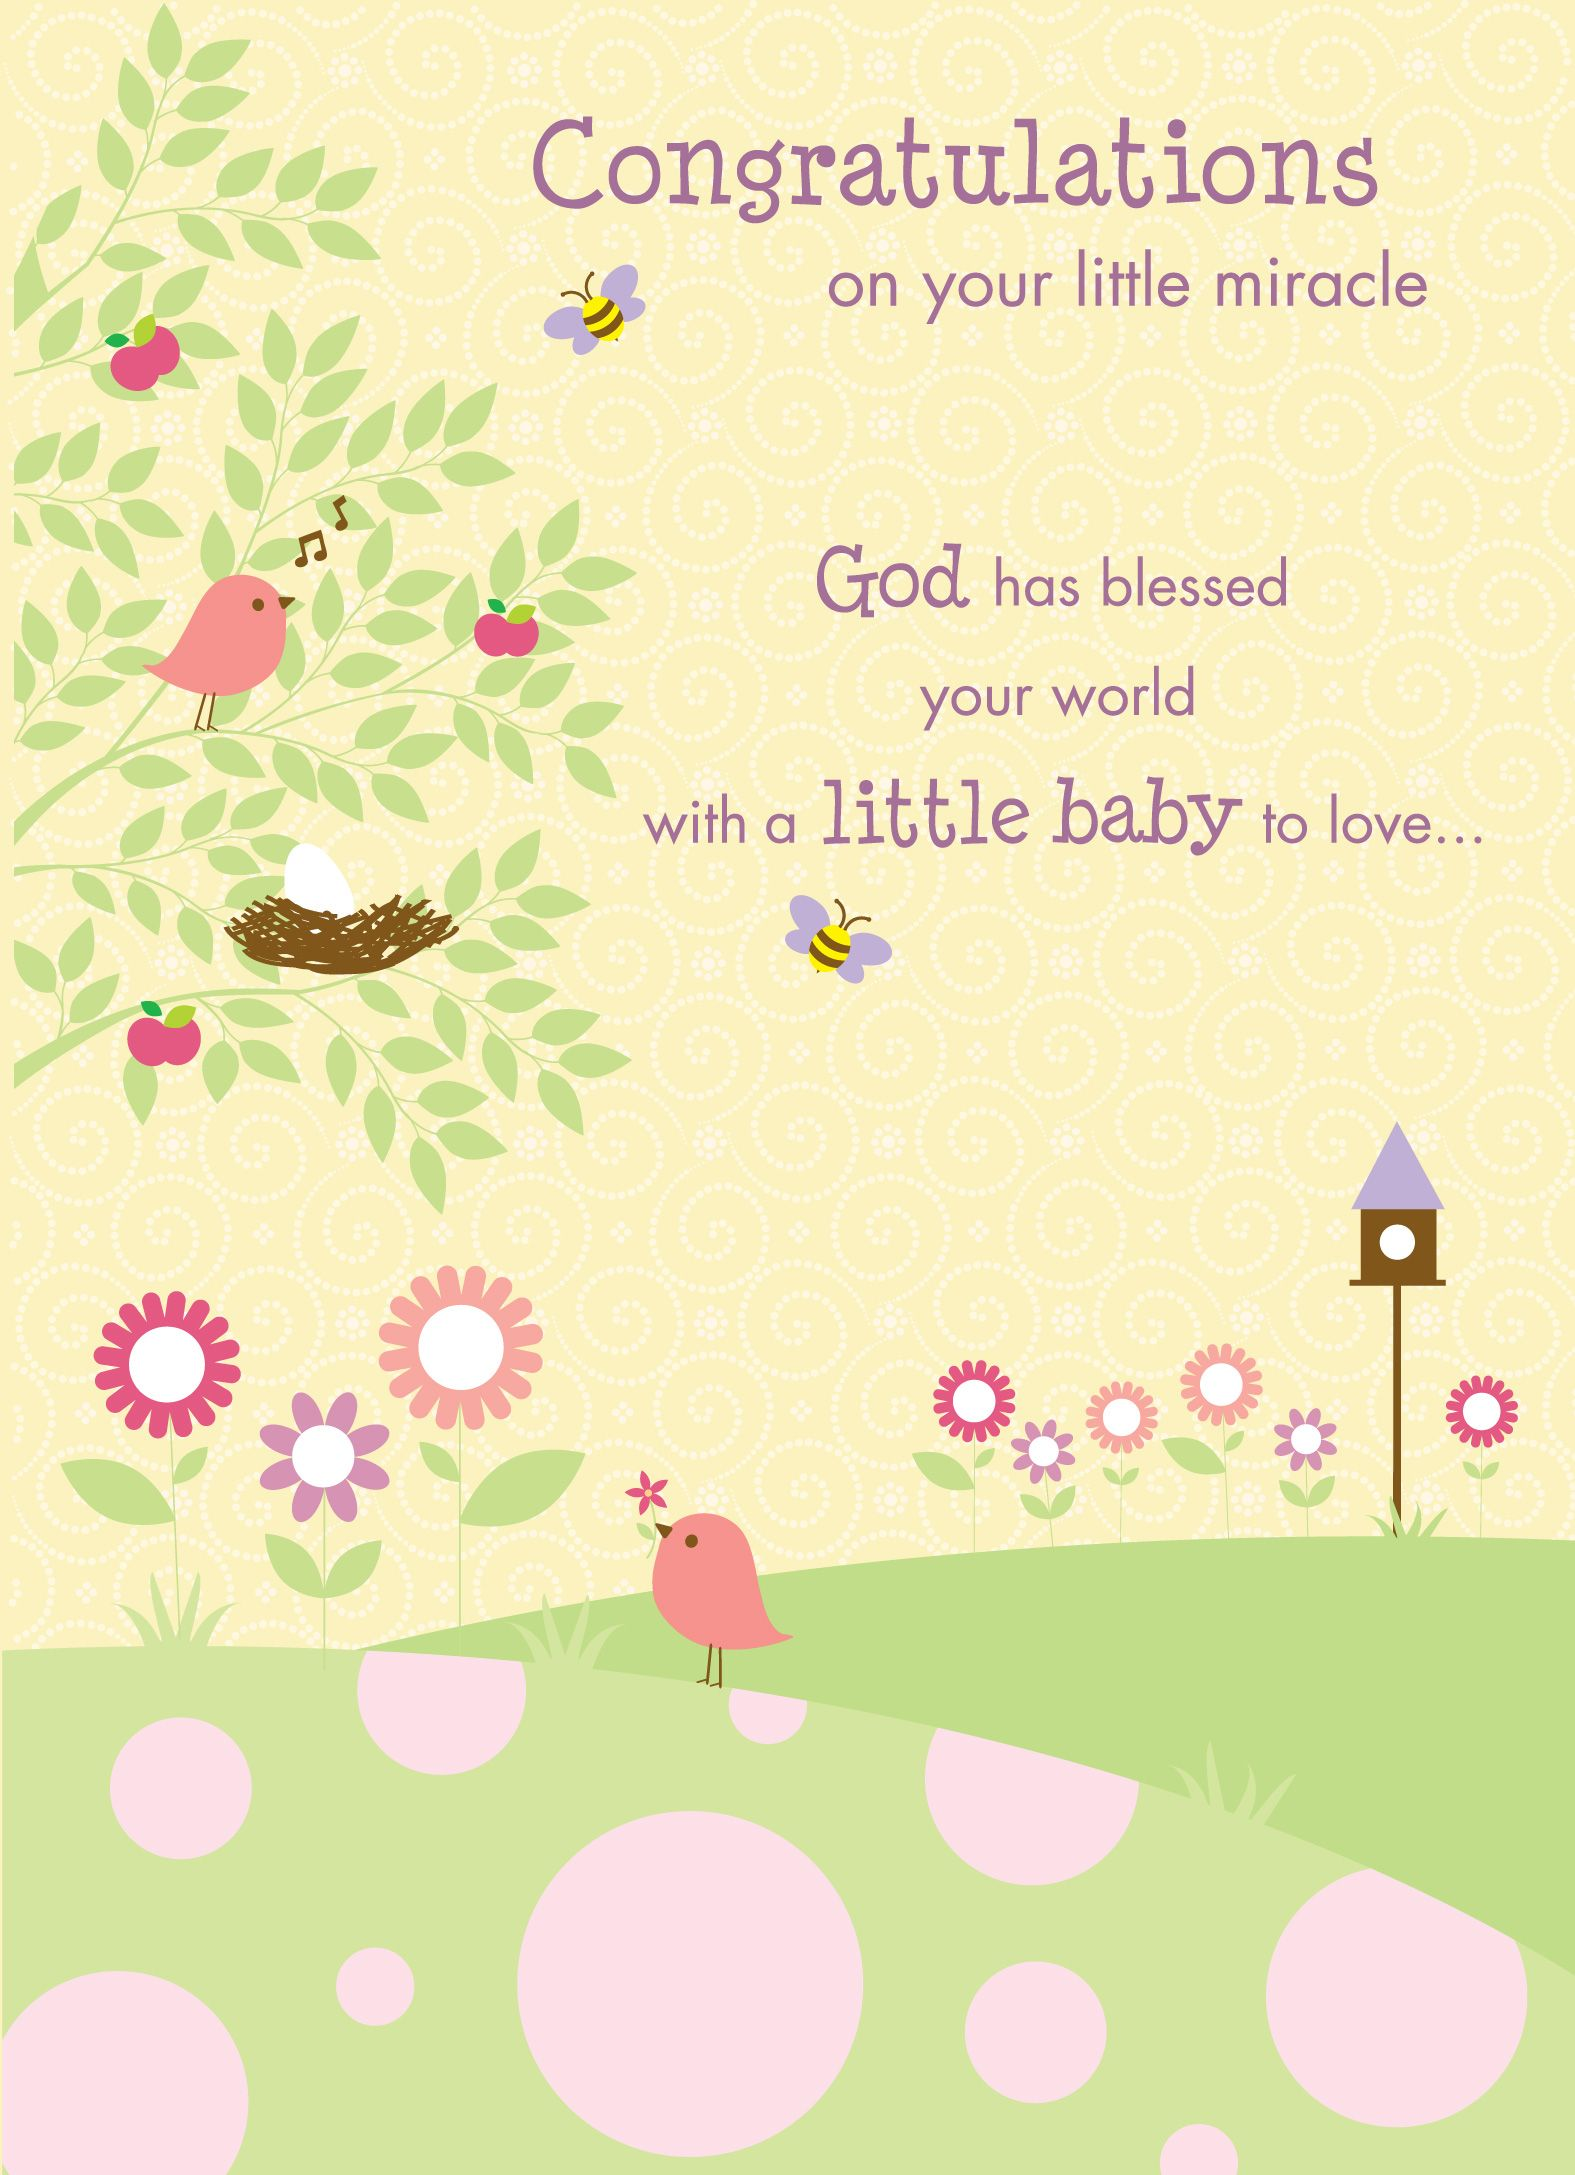 Congratulations on your new miracle. #Religious #BabyShower  #GreetingCardIdeas